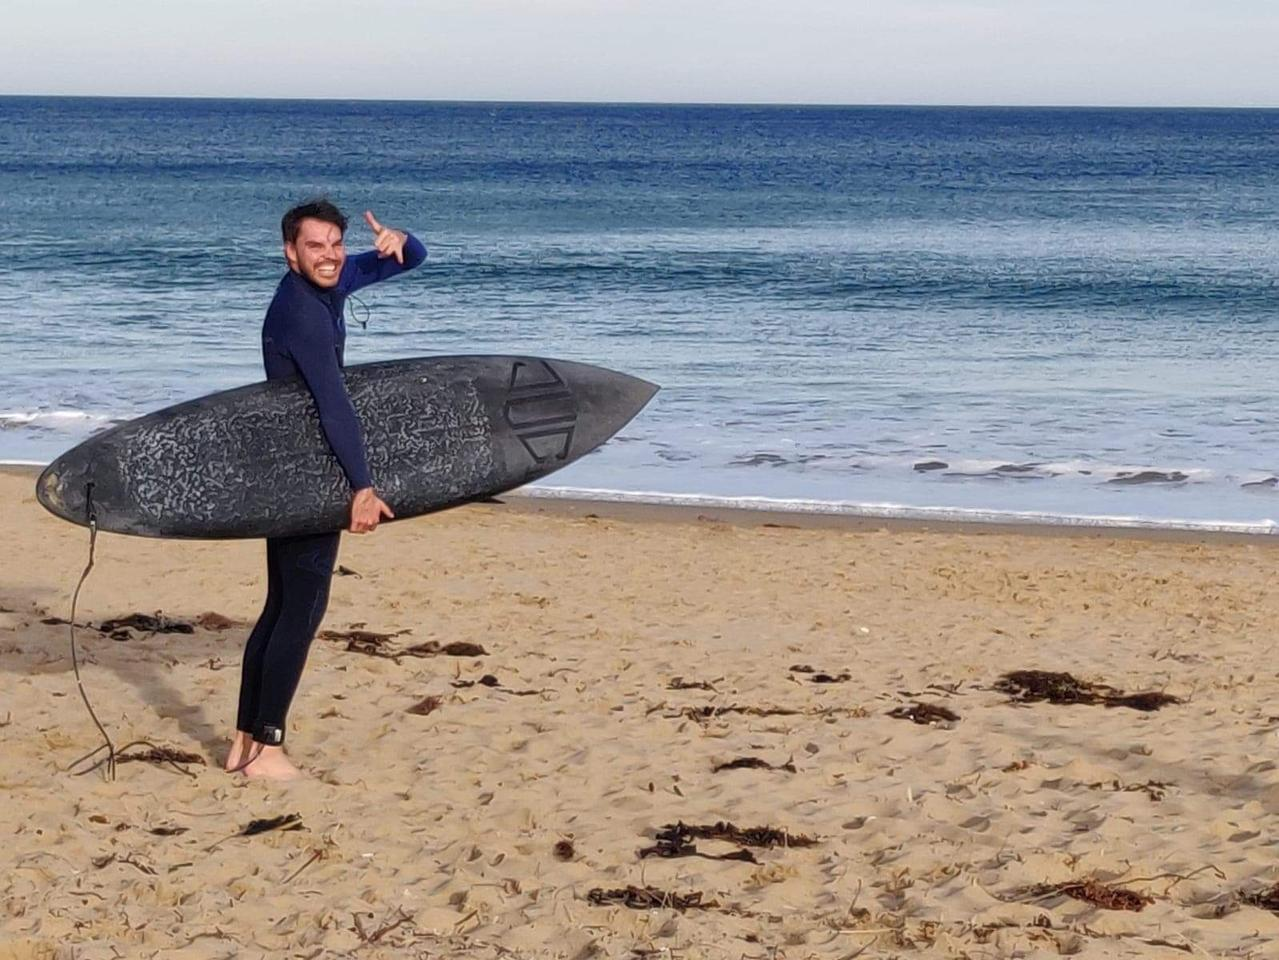 JUC's surfboard is said to offer the same flexibility as a traditional one